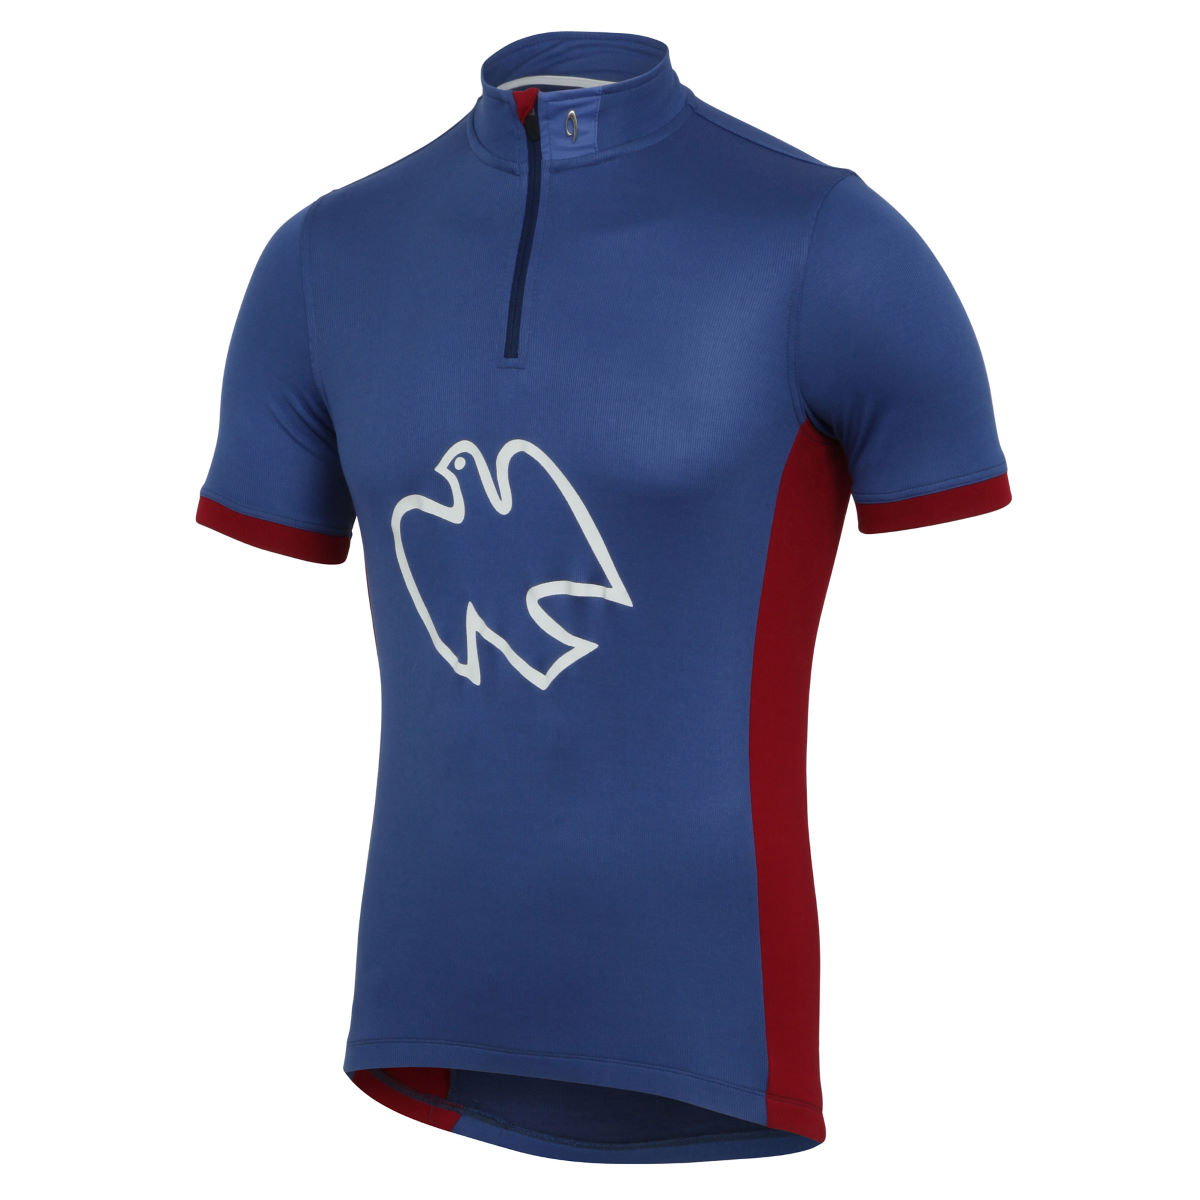 Isadore peace short sleeve jersey short sleeve jerseys limoges blue aw16 8586017371620 16